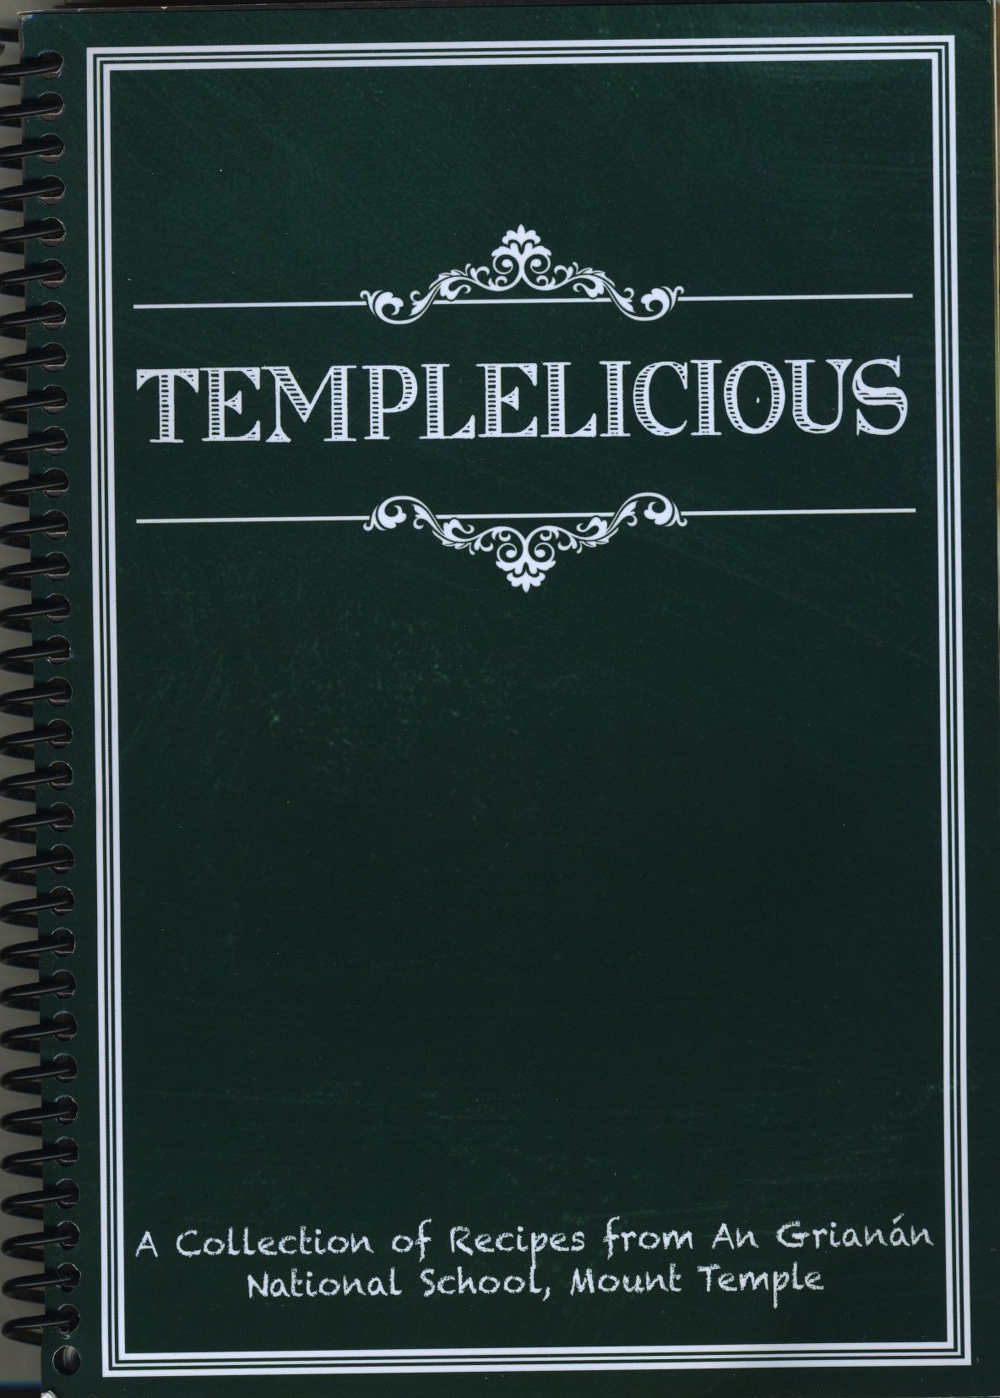 Templelicious